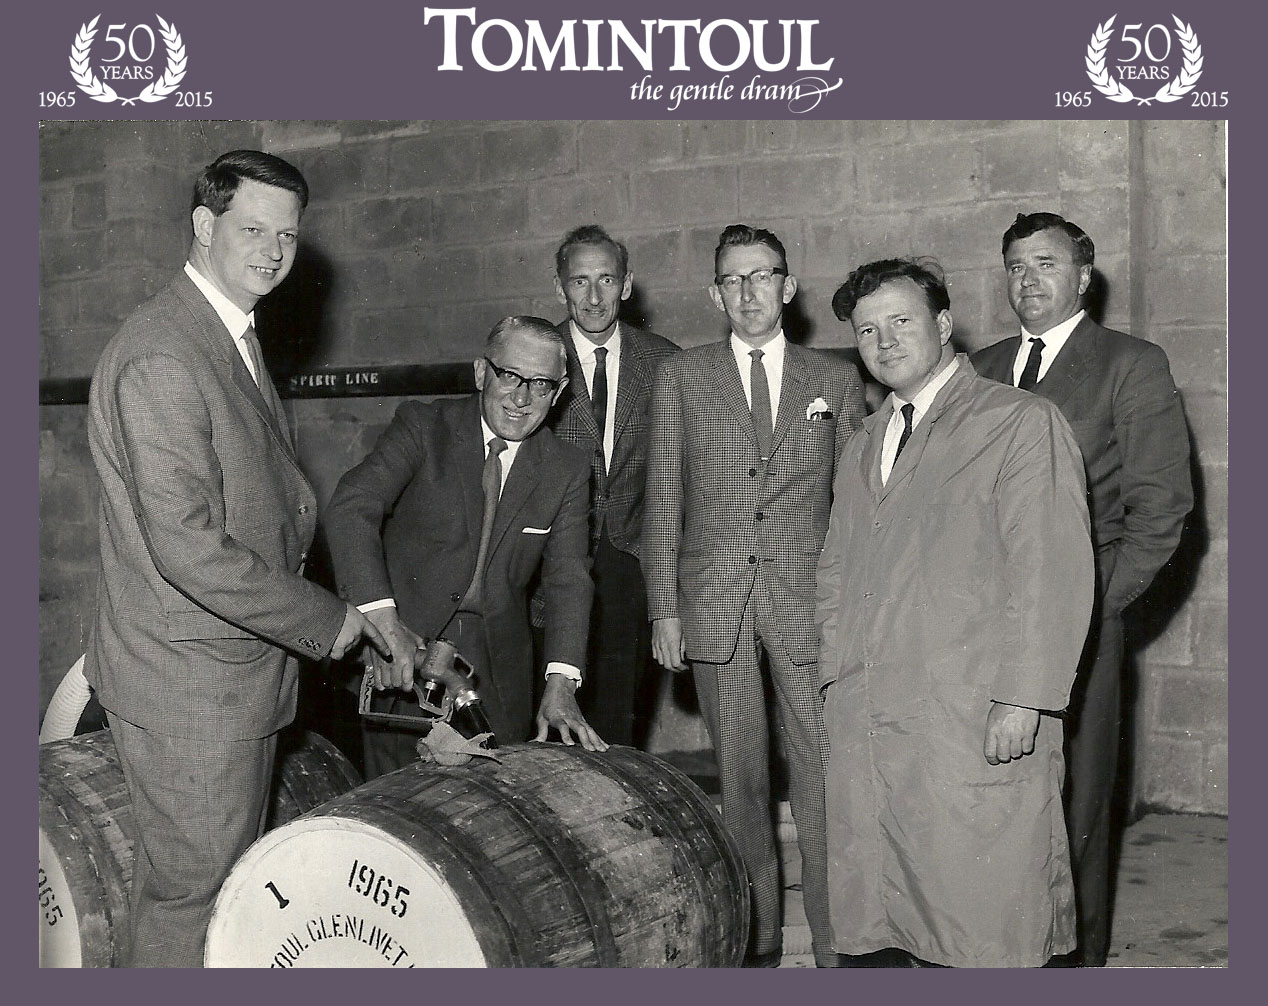 Tomintoul - first cask filling 1965 with 50logos